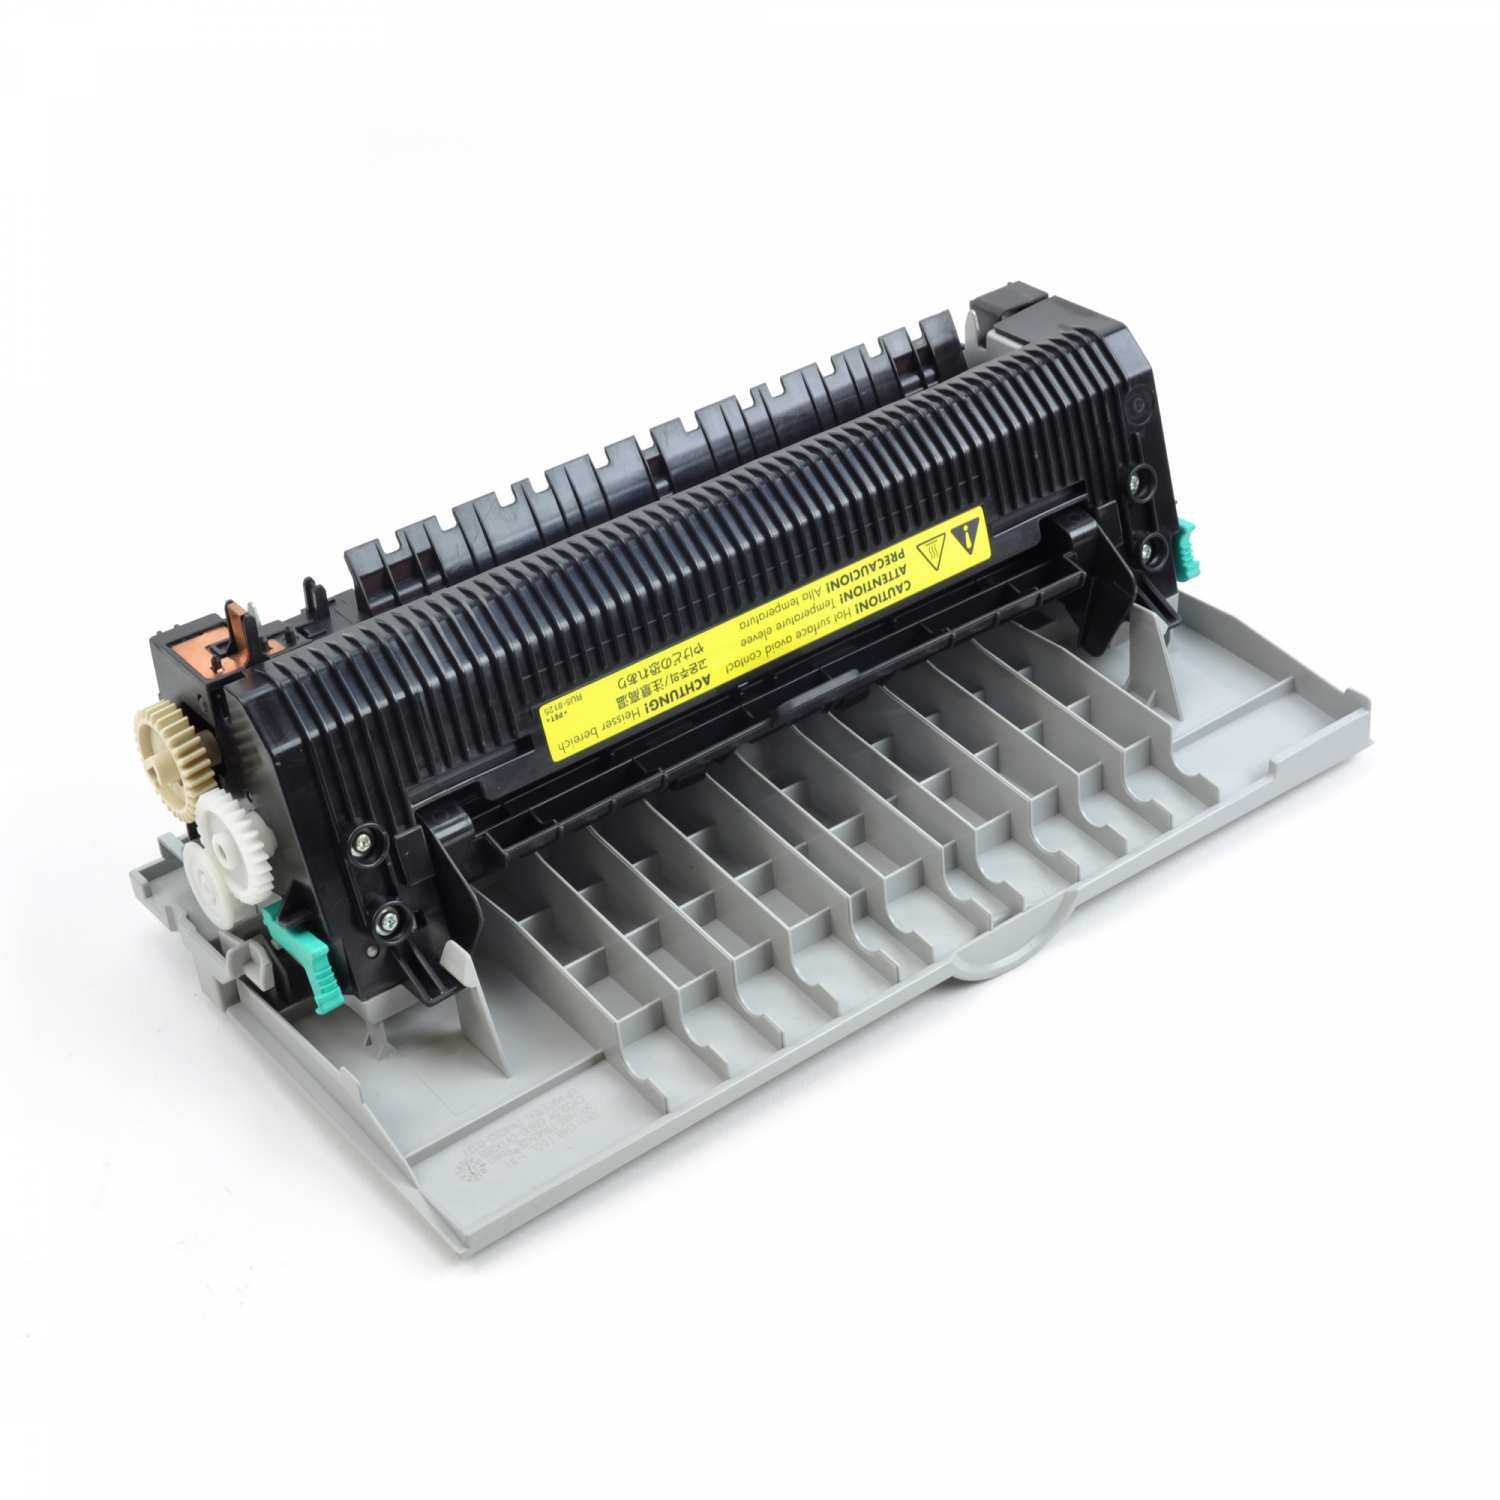 RG5-7572-AEX Fuser Assembly (110V) Exchange for HP Color LaserJet 2550